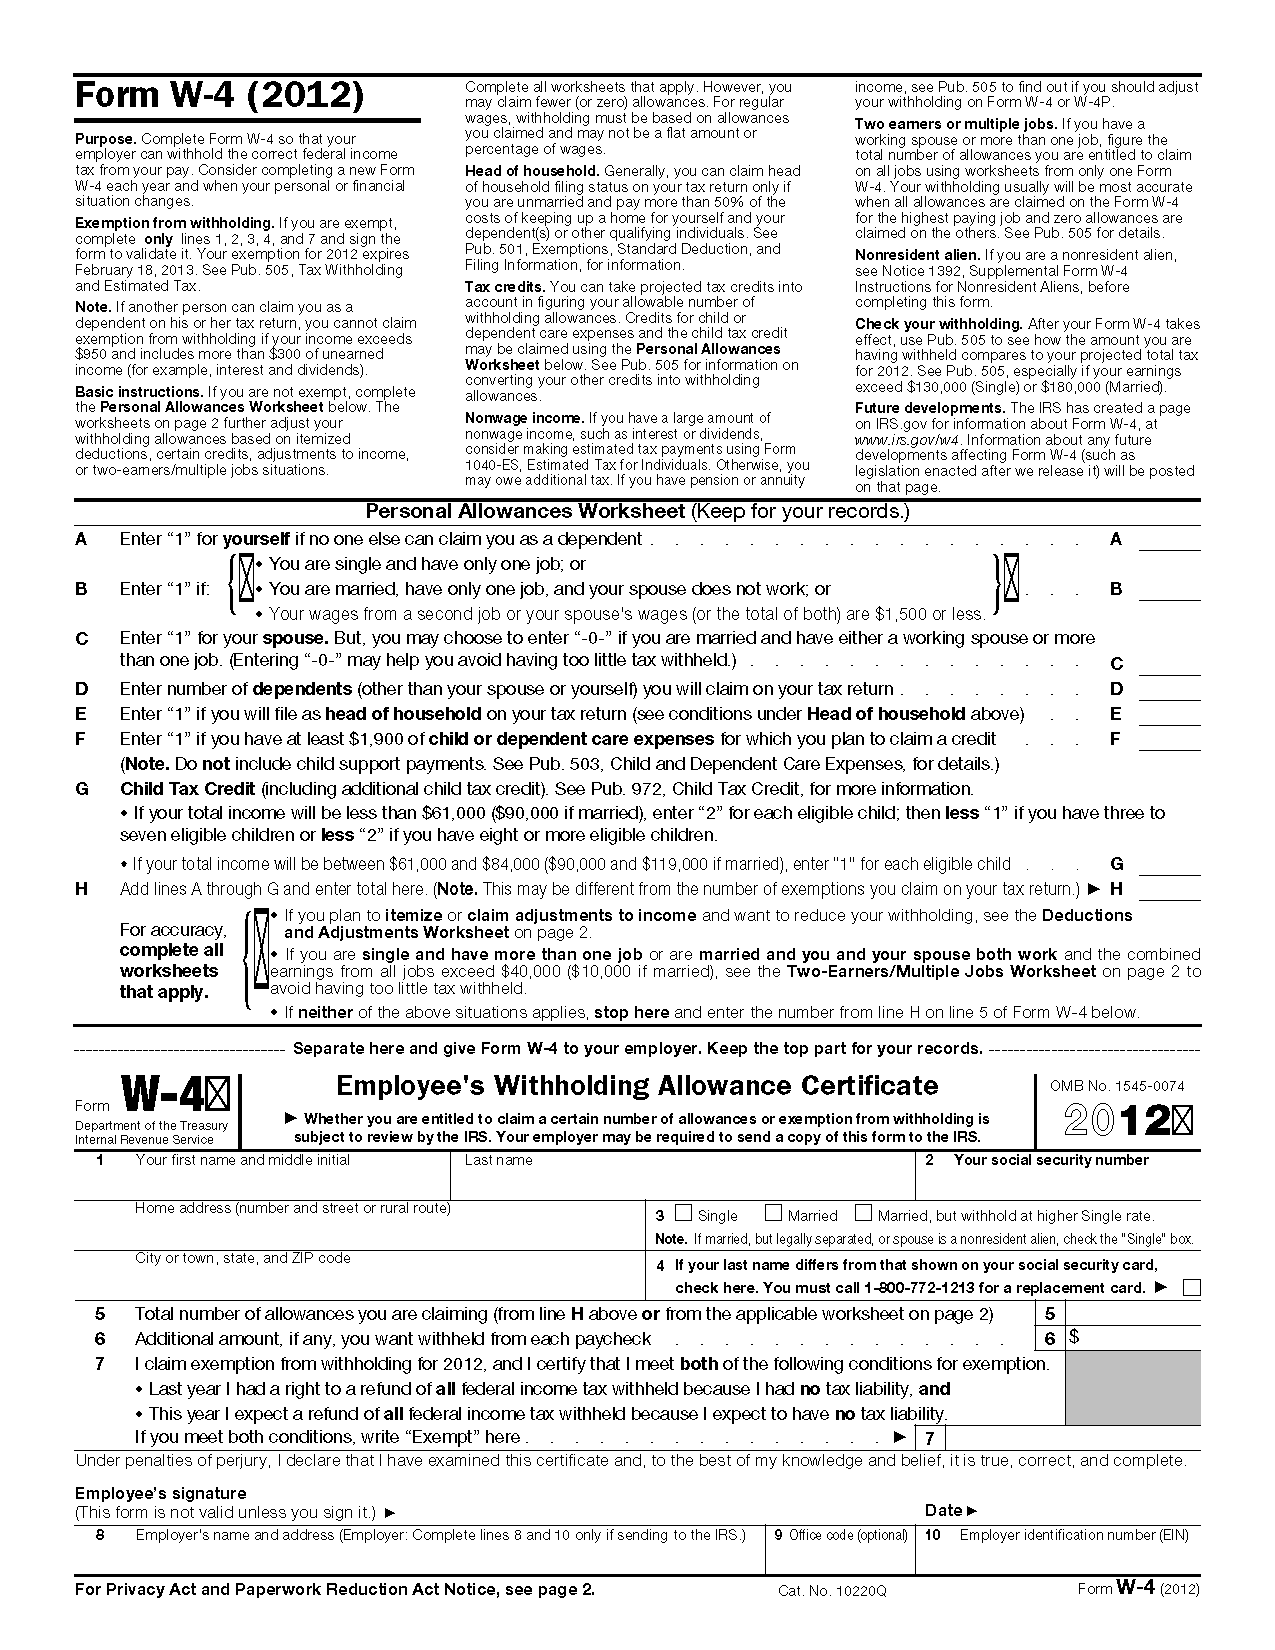 Printables Personal Allowances Worksheet personal allowances worksheet fireyourmentor free printable worksheets form w 4 employees withholding allowance certificate view all 2011 irs tax